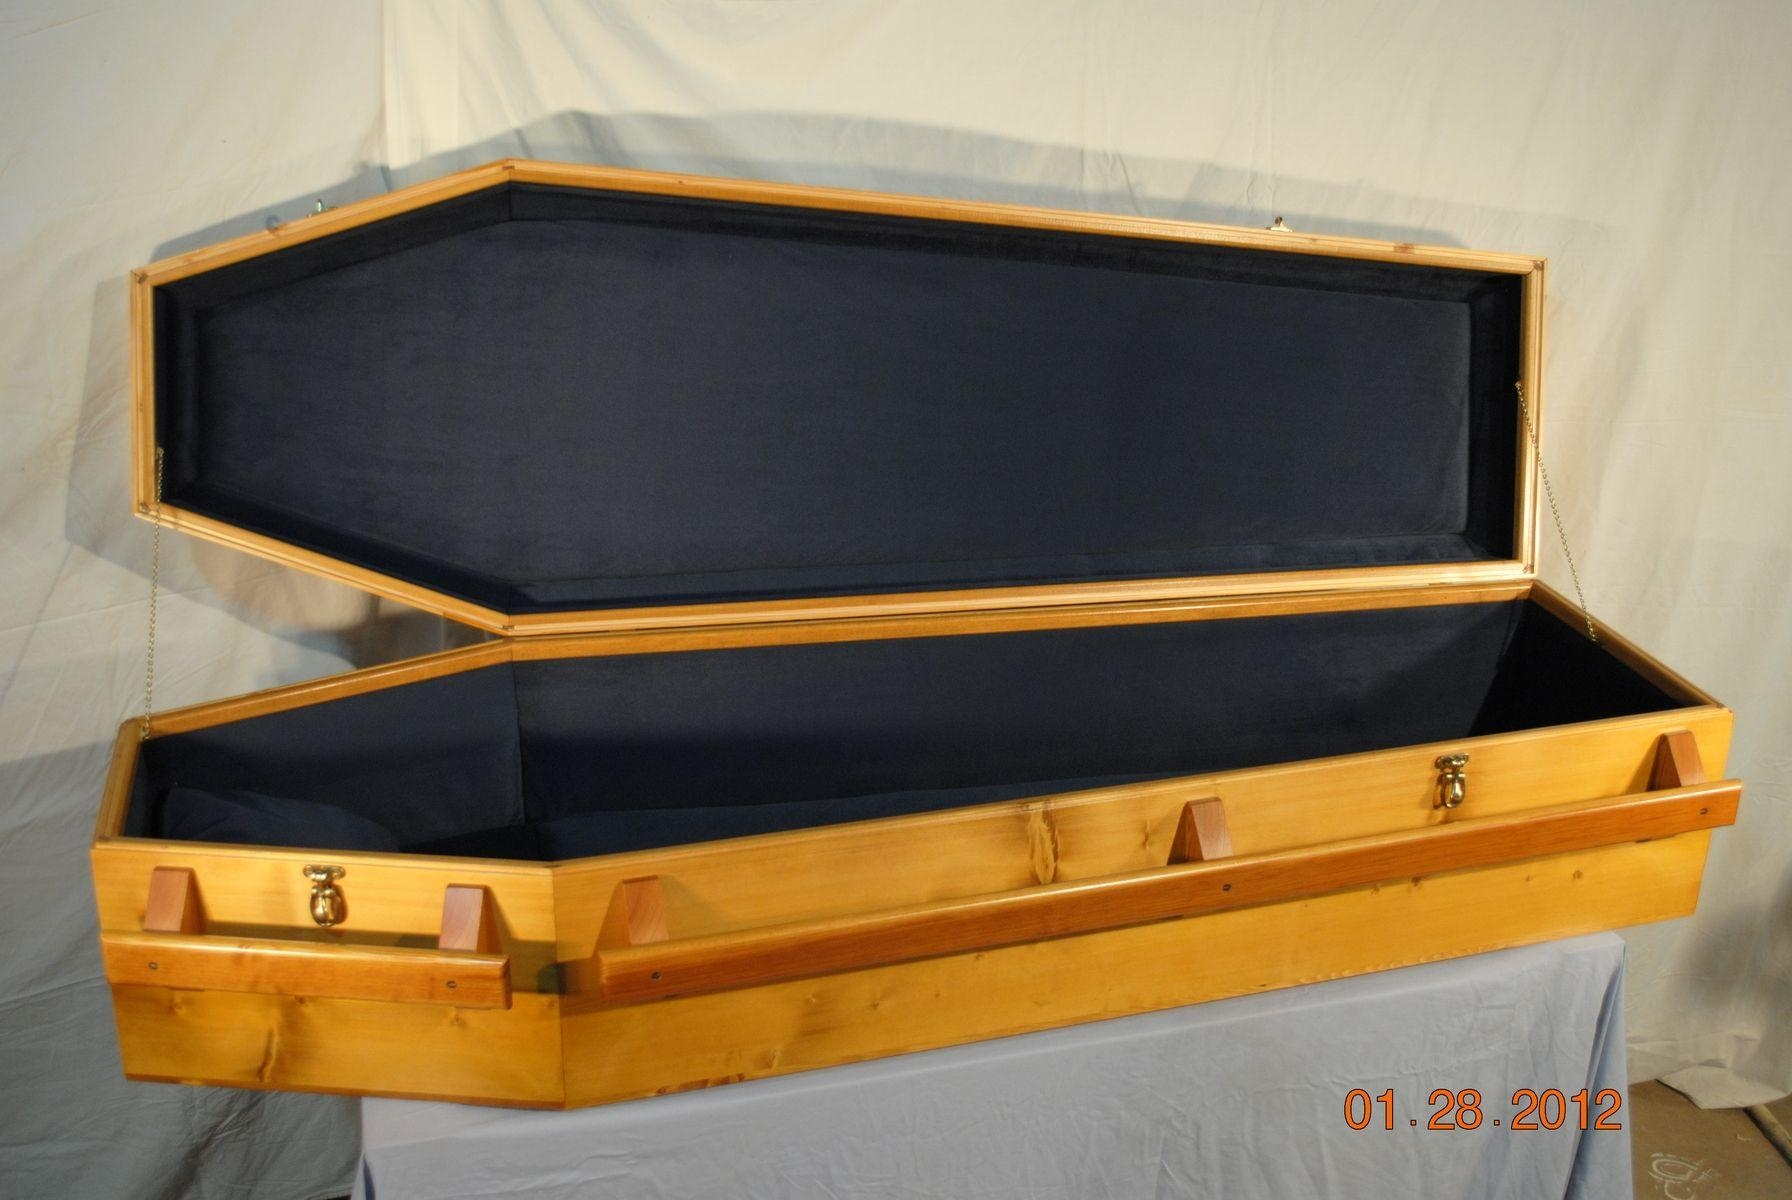 Coffin Sofa With Design Photo 38203 | Kengire Inside Coffin Sofas (View 3 of 20)